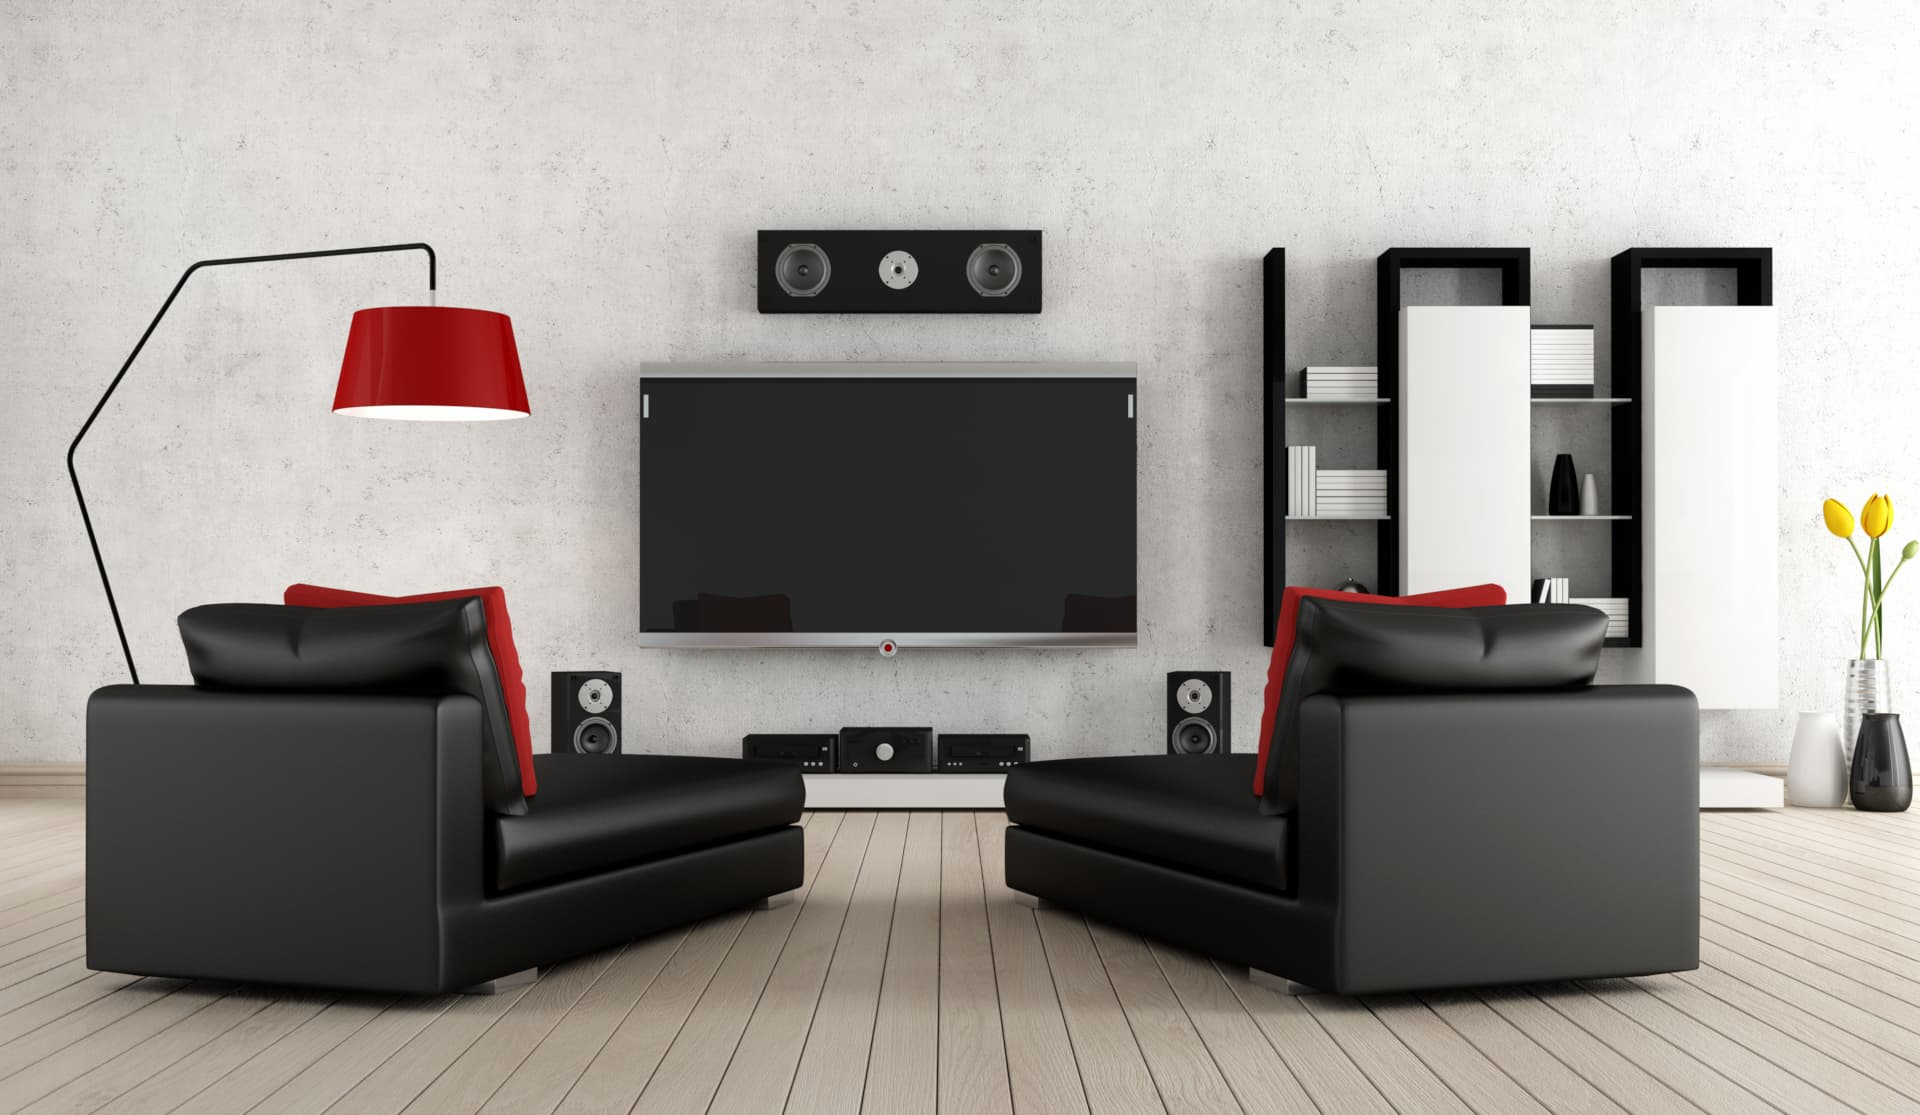 home cinema design in red and black